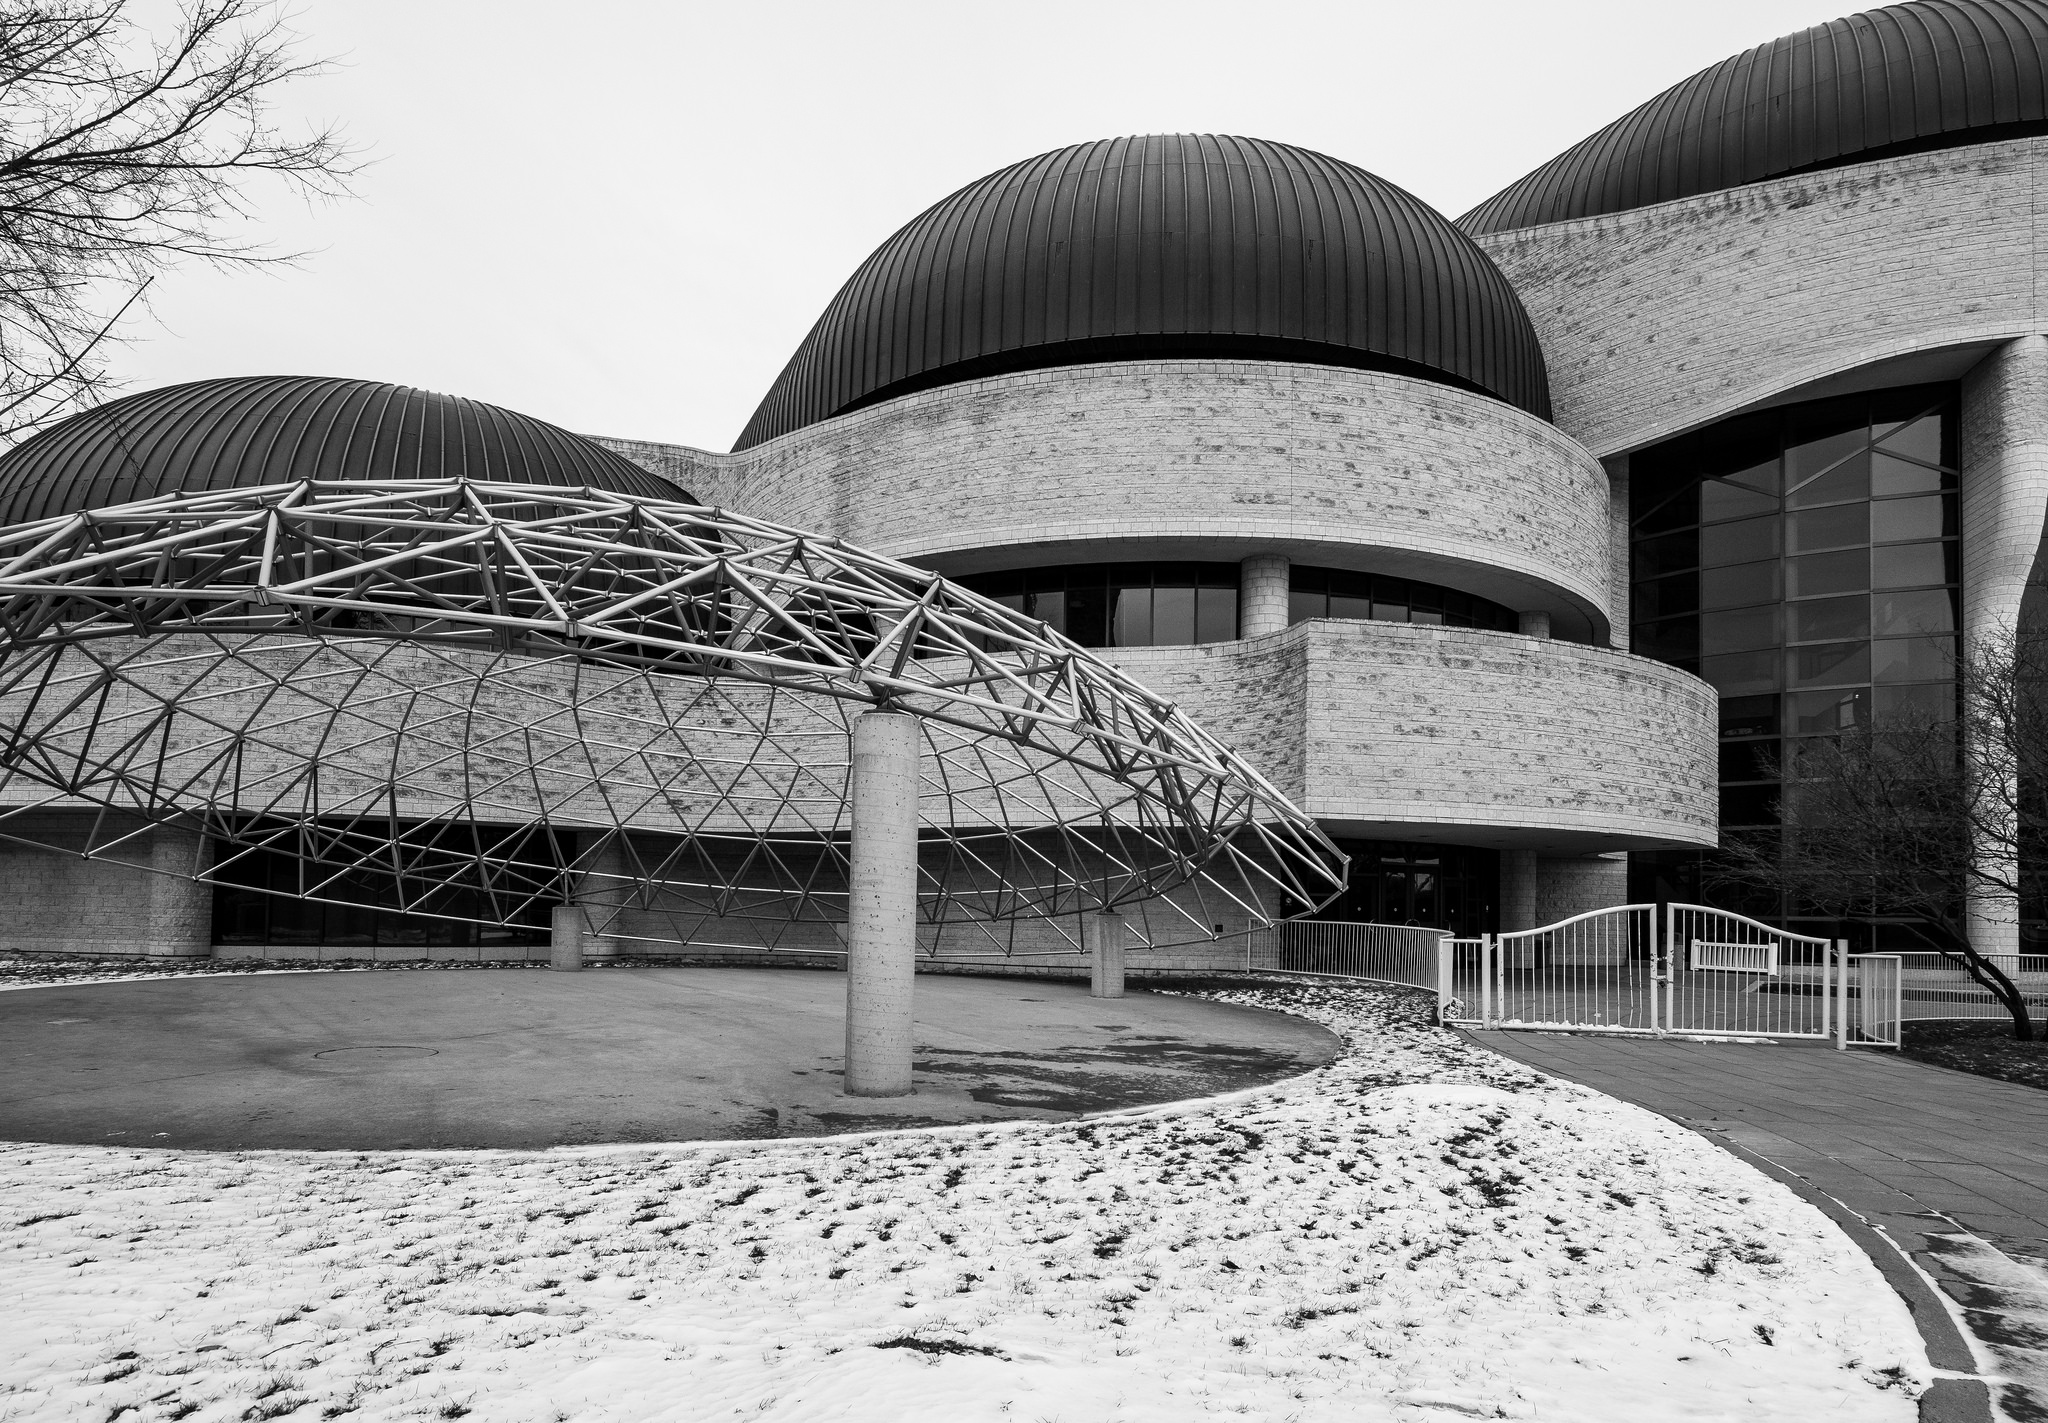 Canadian Museum of History (1/800s, f/8, ISO400)